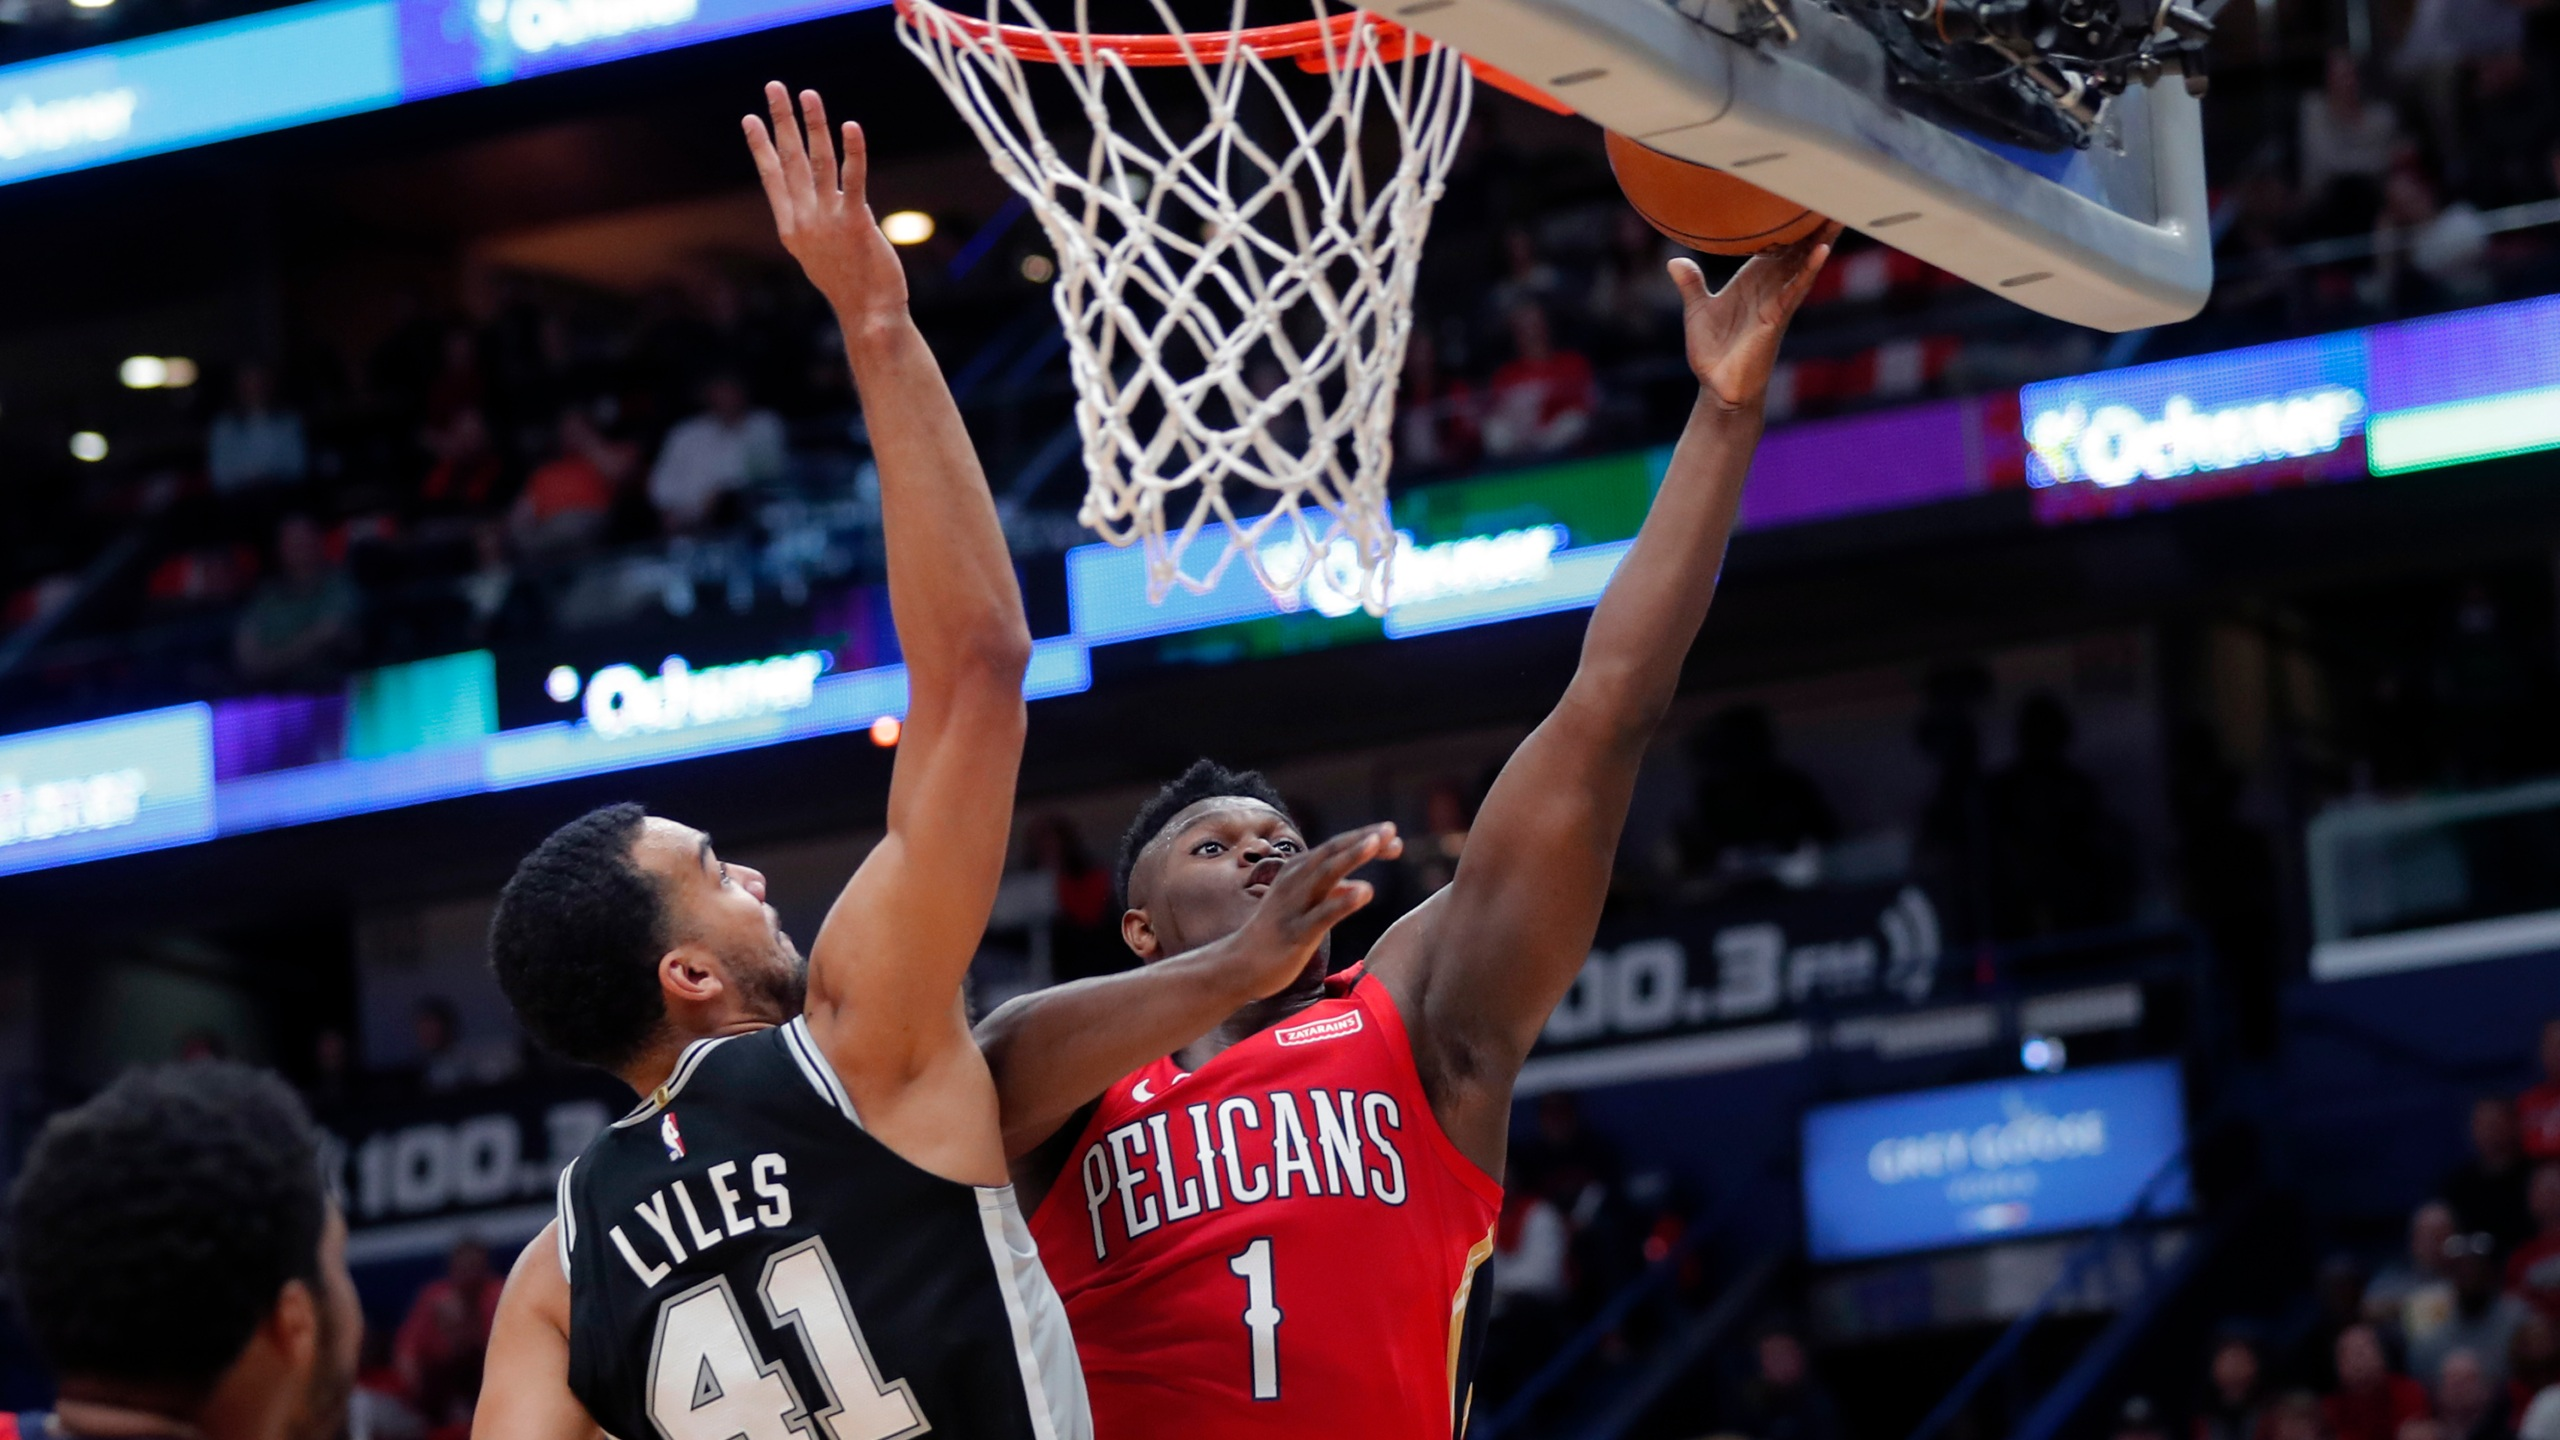 Williamson S 22 In Debut Not Enough For Pelicans Vs Spurs